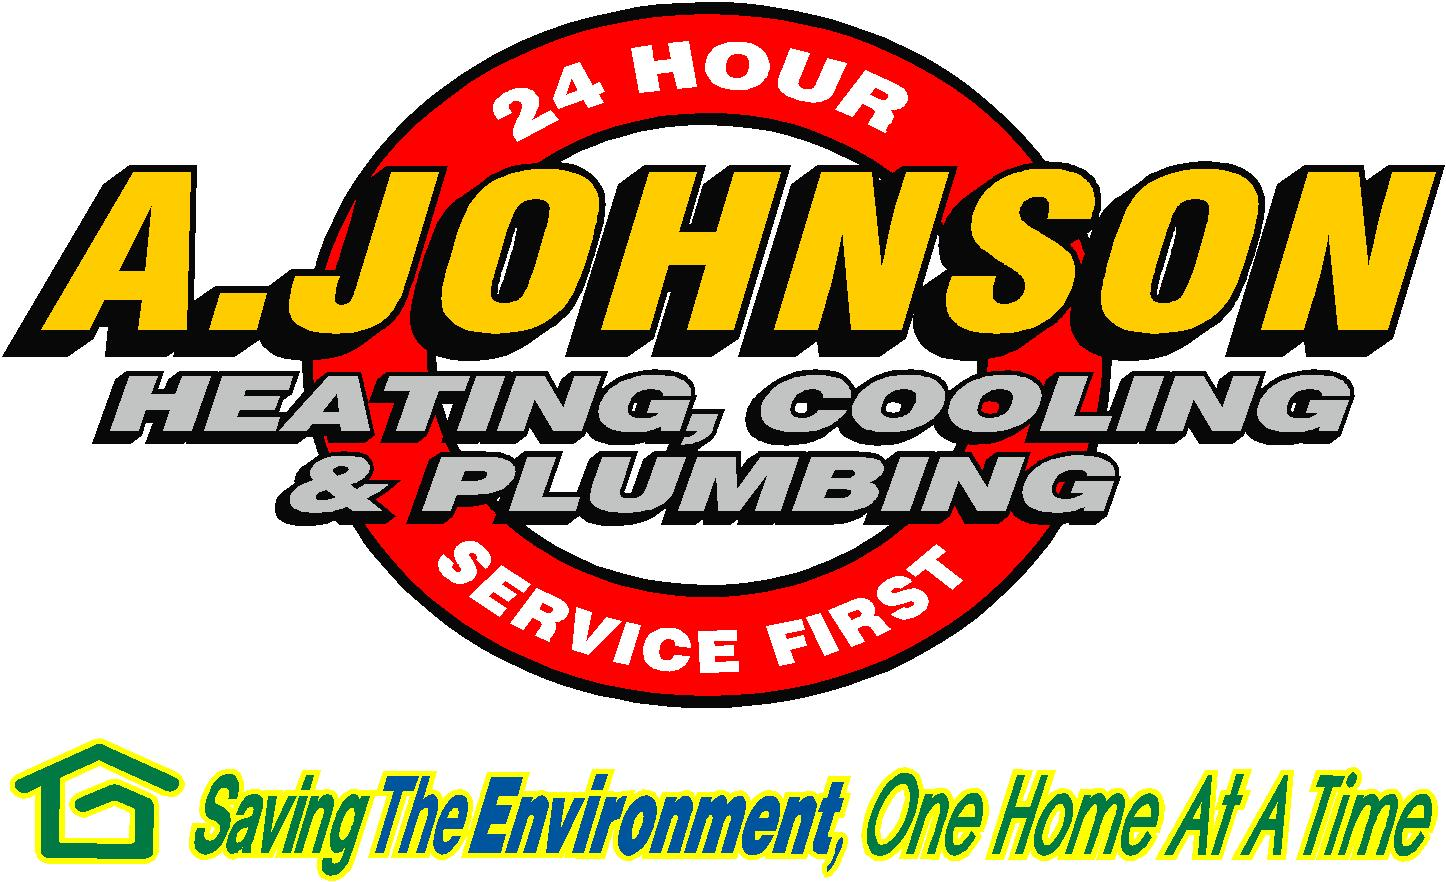 AC repair in Schenectady NY, A Johnson Heating, Cooling & Plumbing.